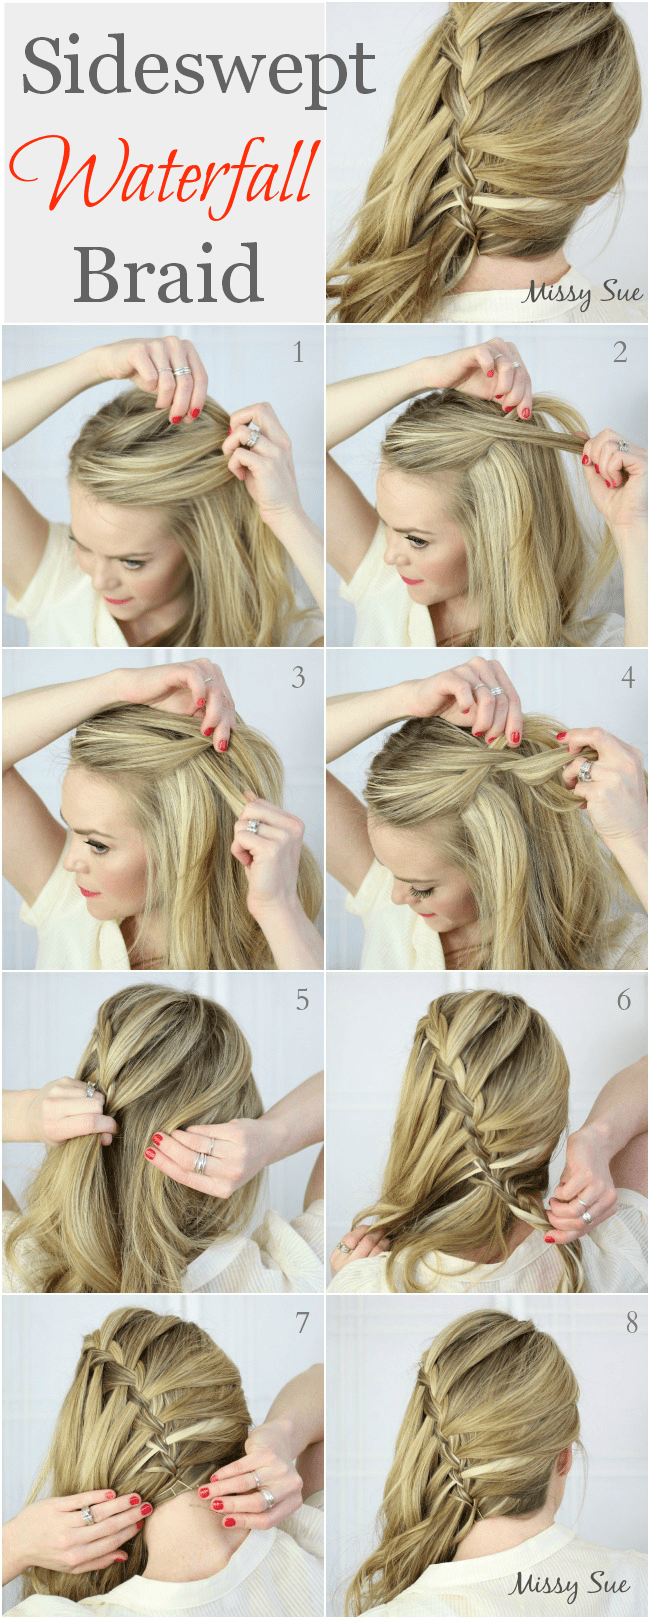 braid-11-sideswept-waterfall-braid-missysue-blog